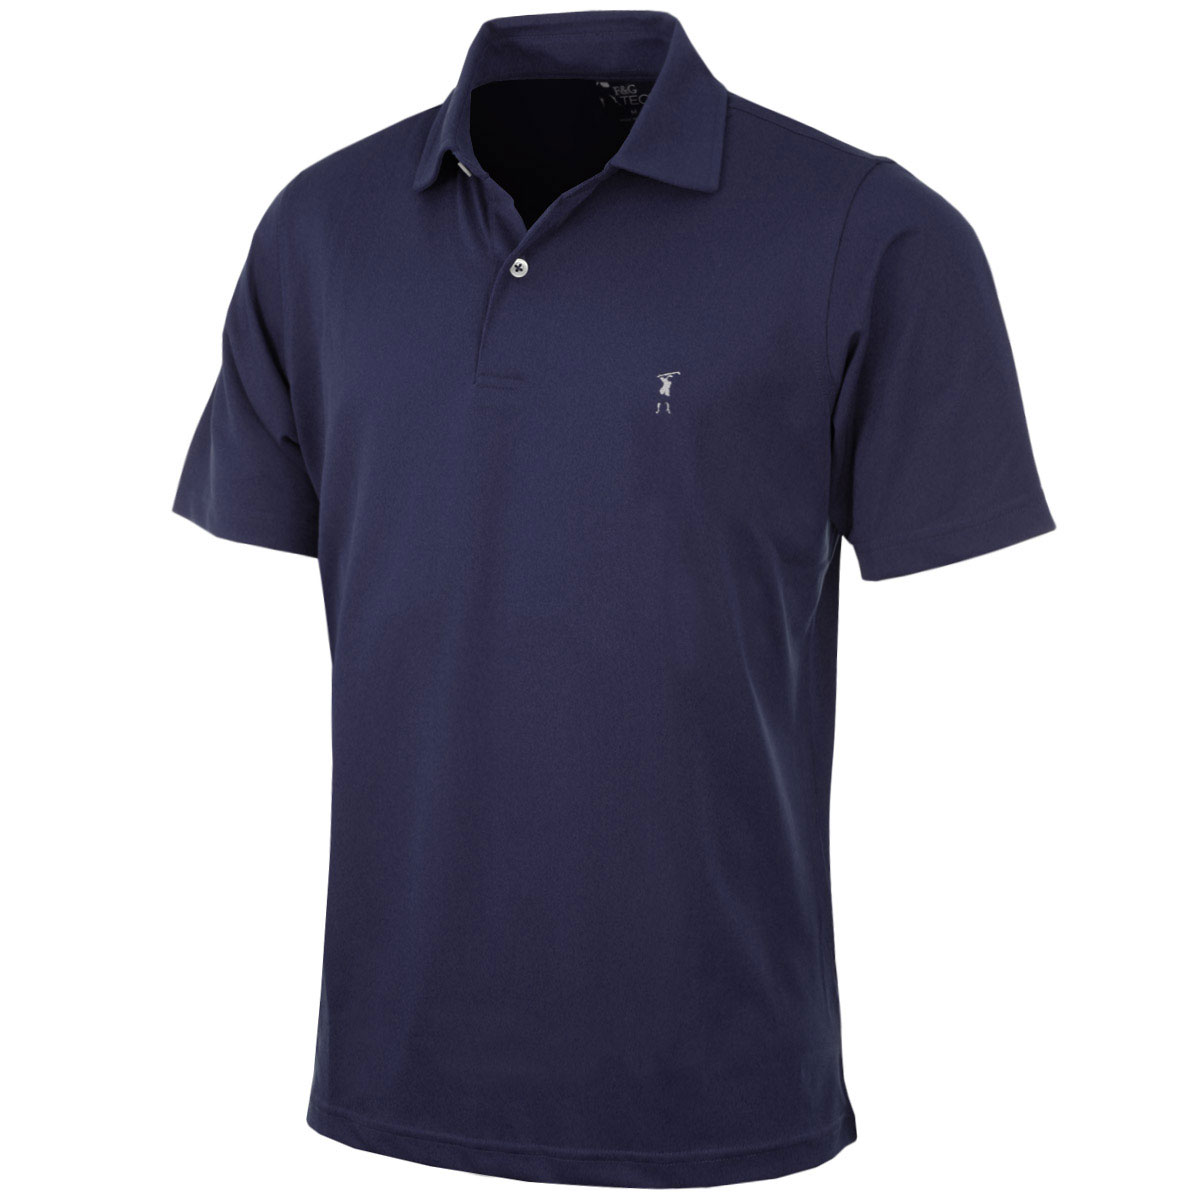 87c66486d3b Fairway   Greene Mens Solid Tech Pique Golf Polo Shirt 38 off L ...